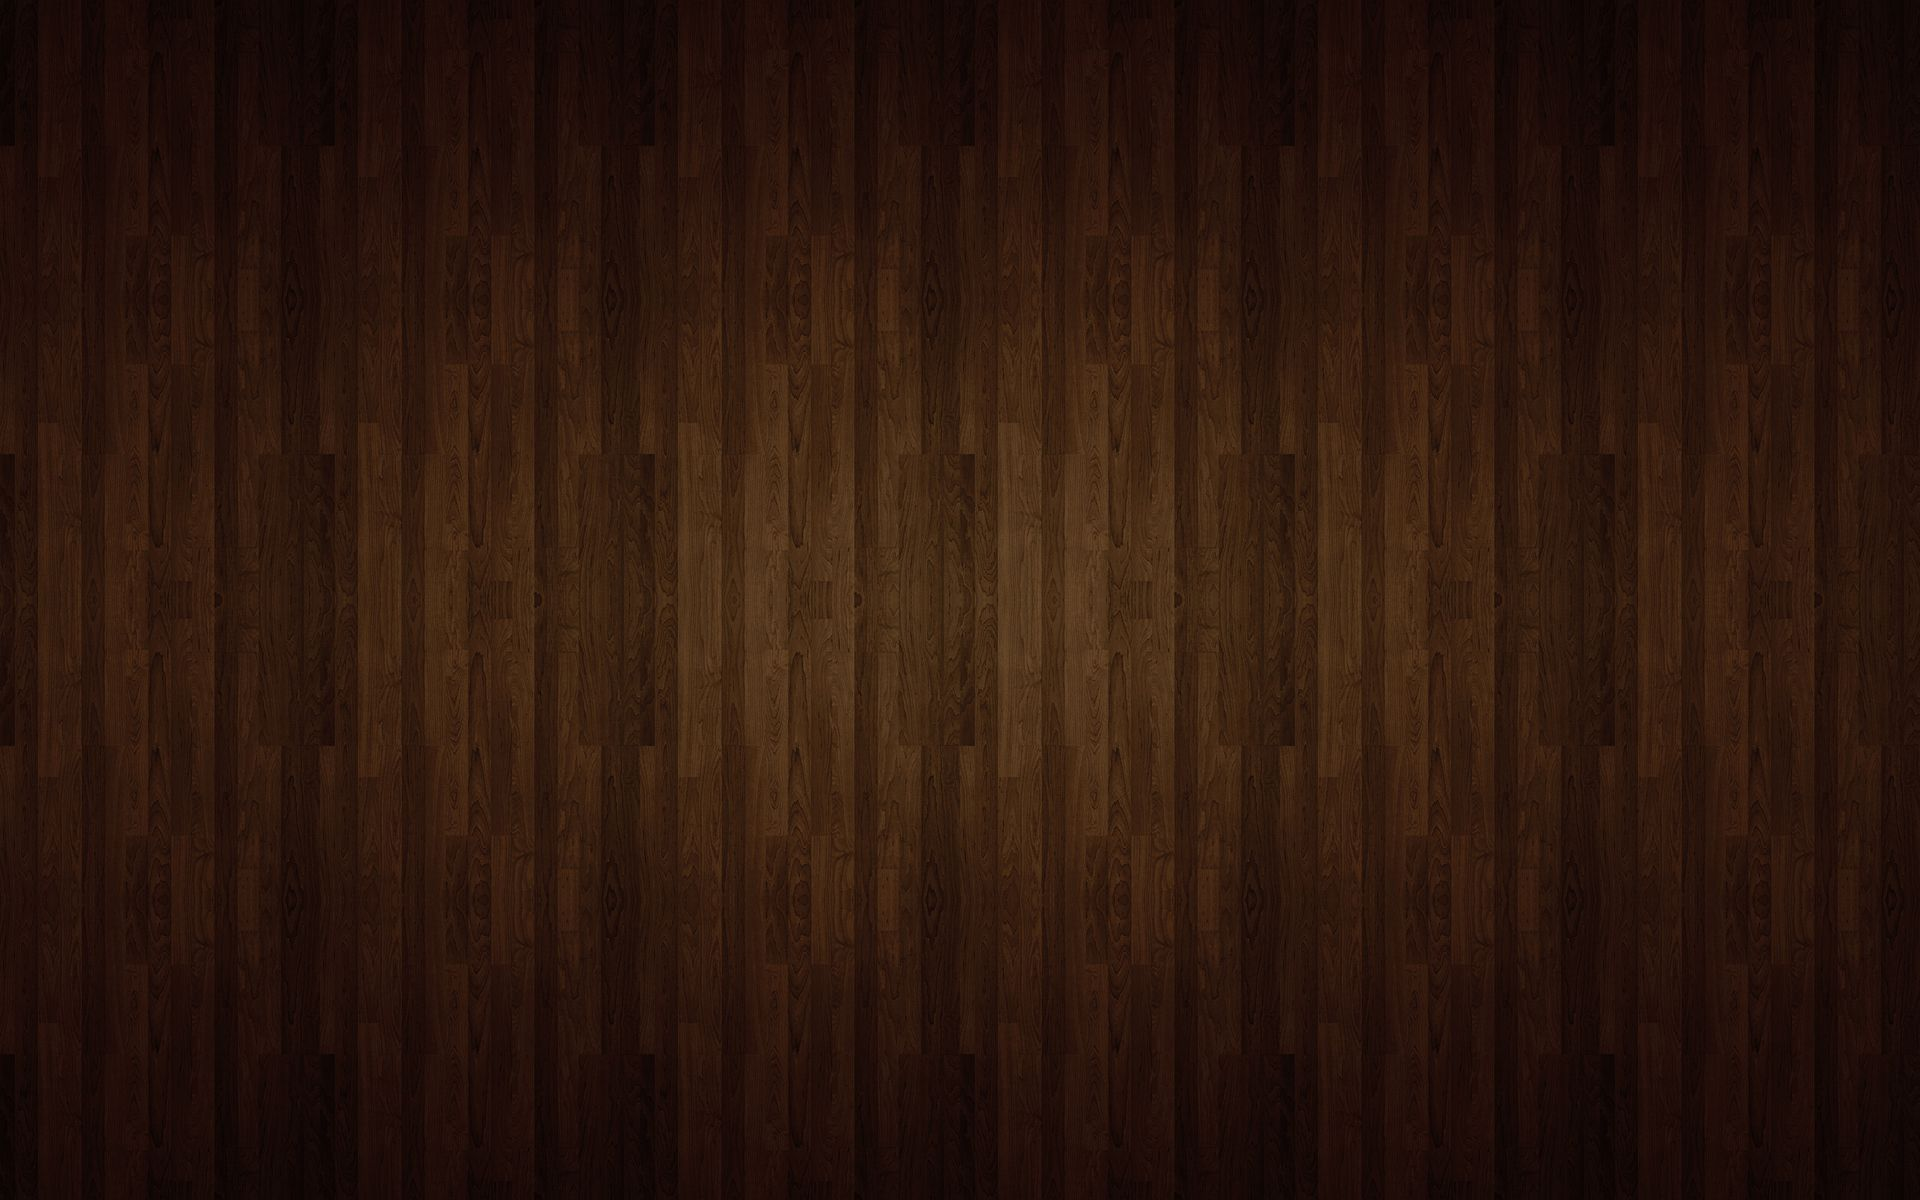 Wallpaper background madeira escura black wood for Papel de pared negro